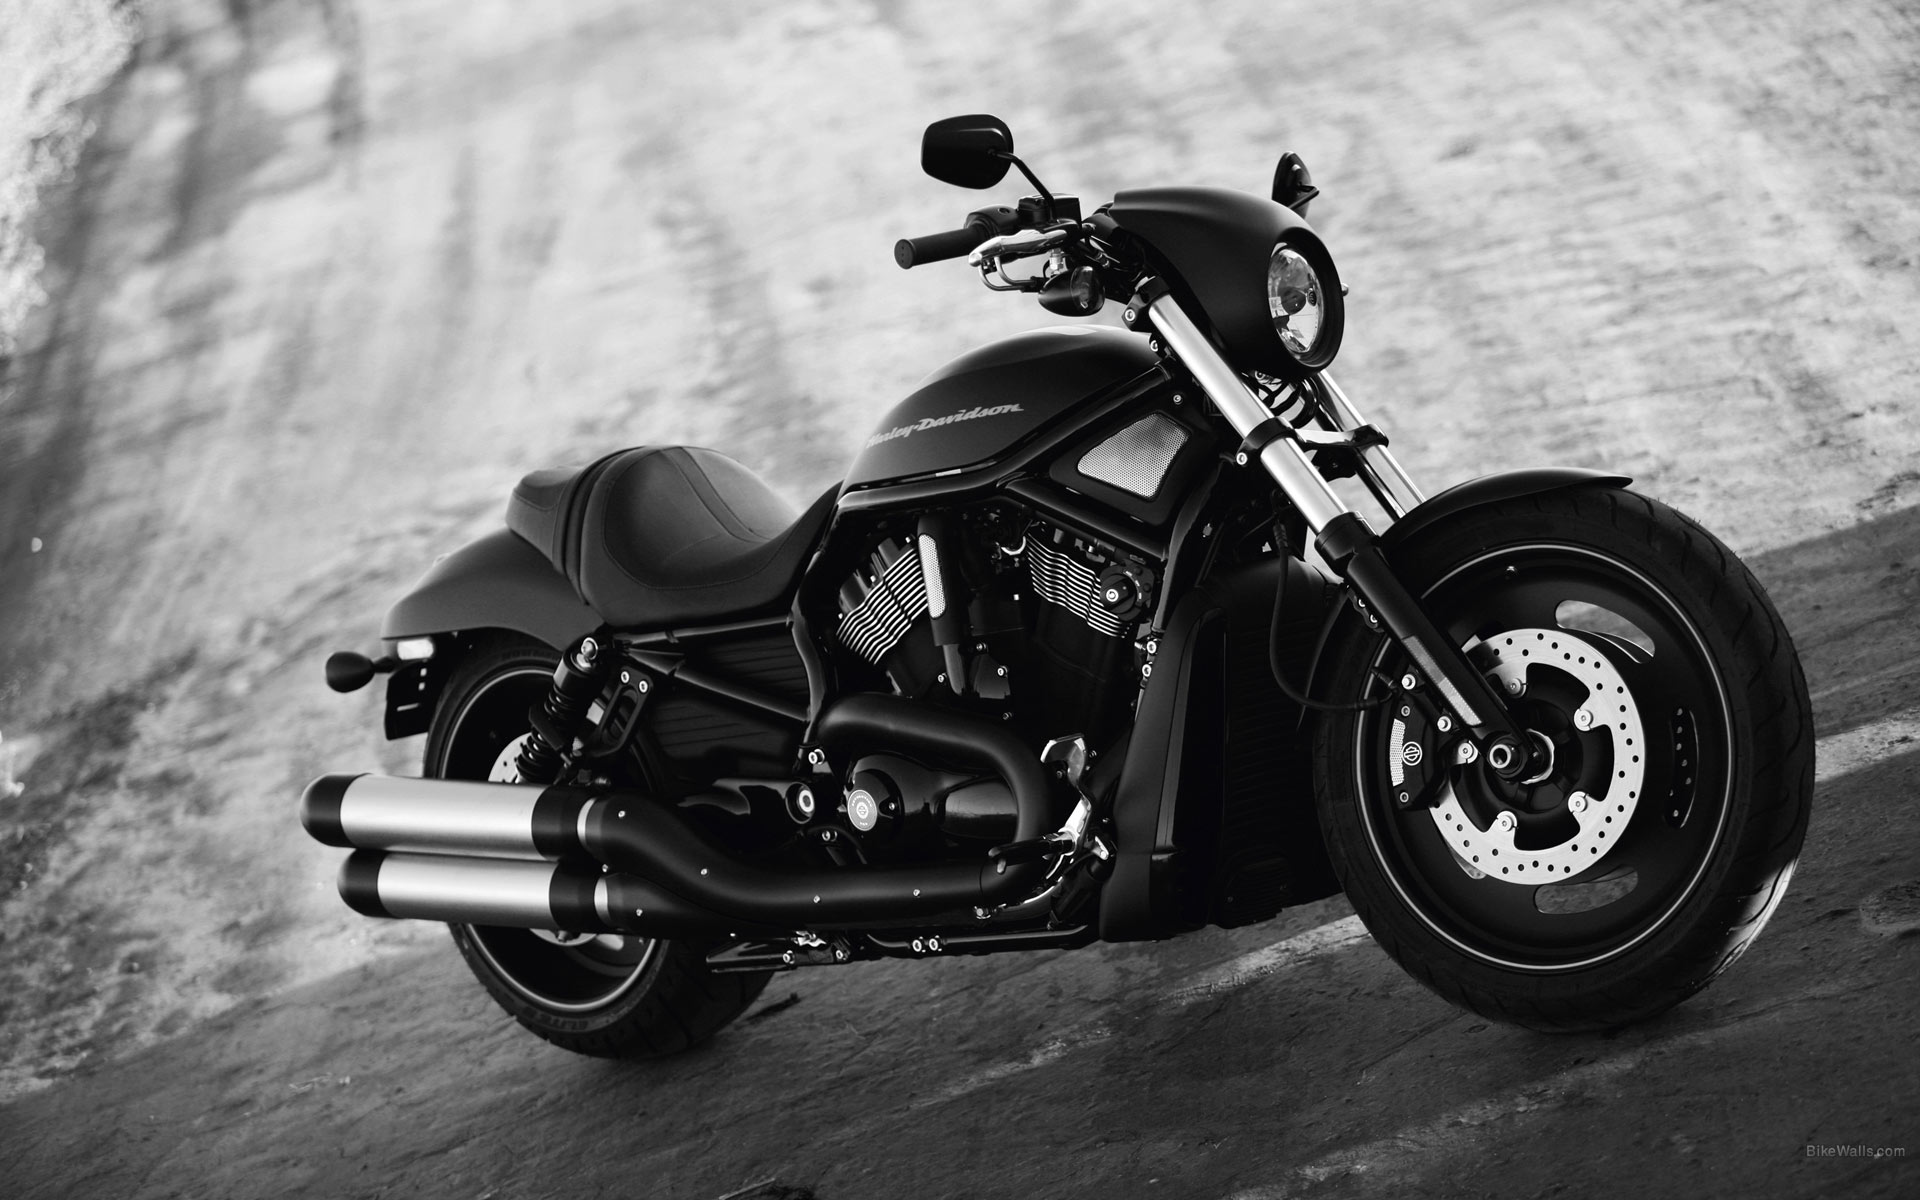 Harley Davidson Vrsc Night Rod 1920x1200 Download Hd Wallpaper Wallpapertip